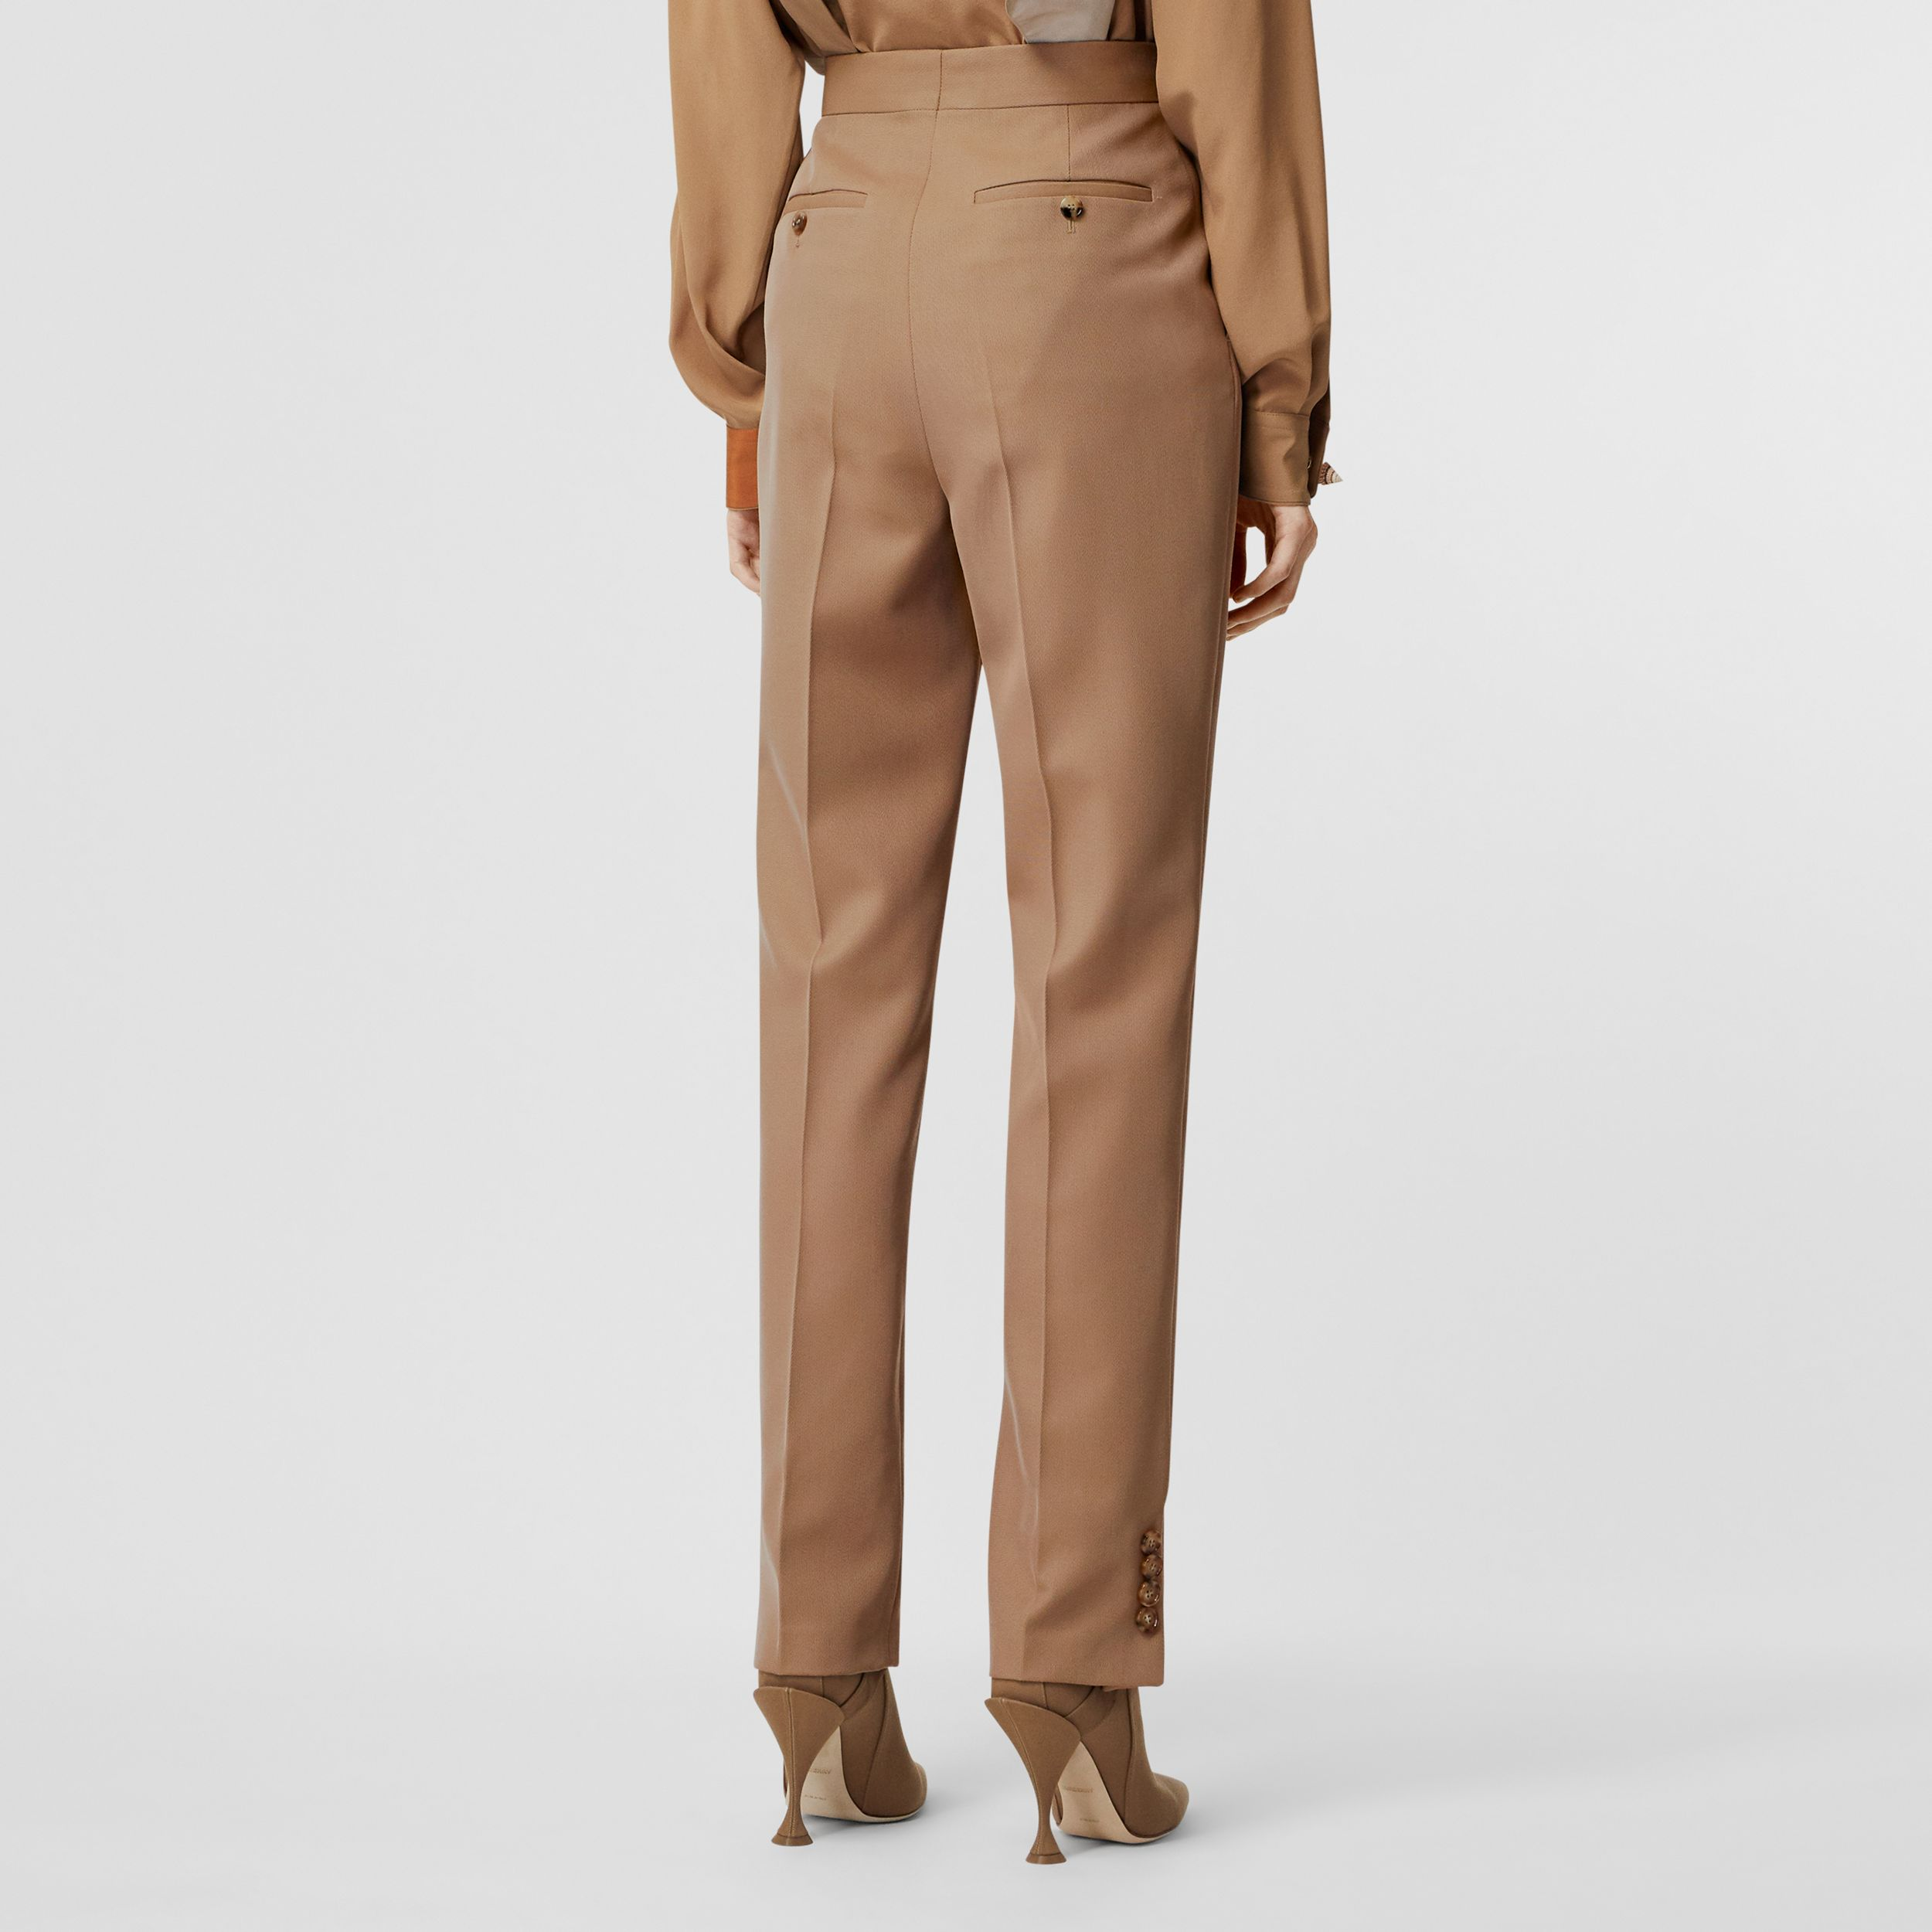 Straight Fit Button Detail Wool Blend Tailored Trousers in Camel - Women | Burberry - 3